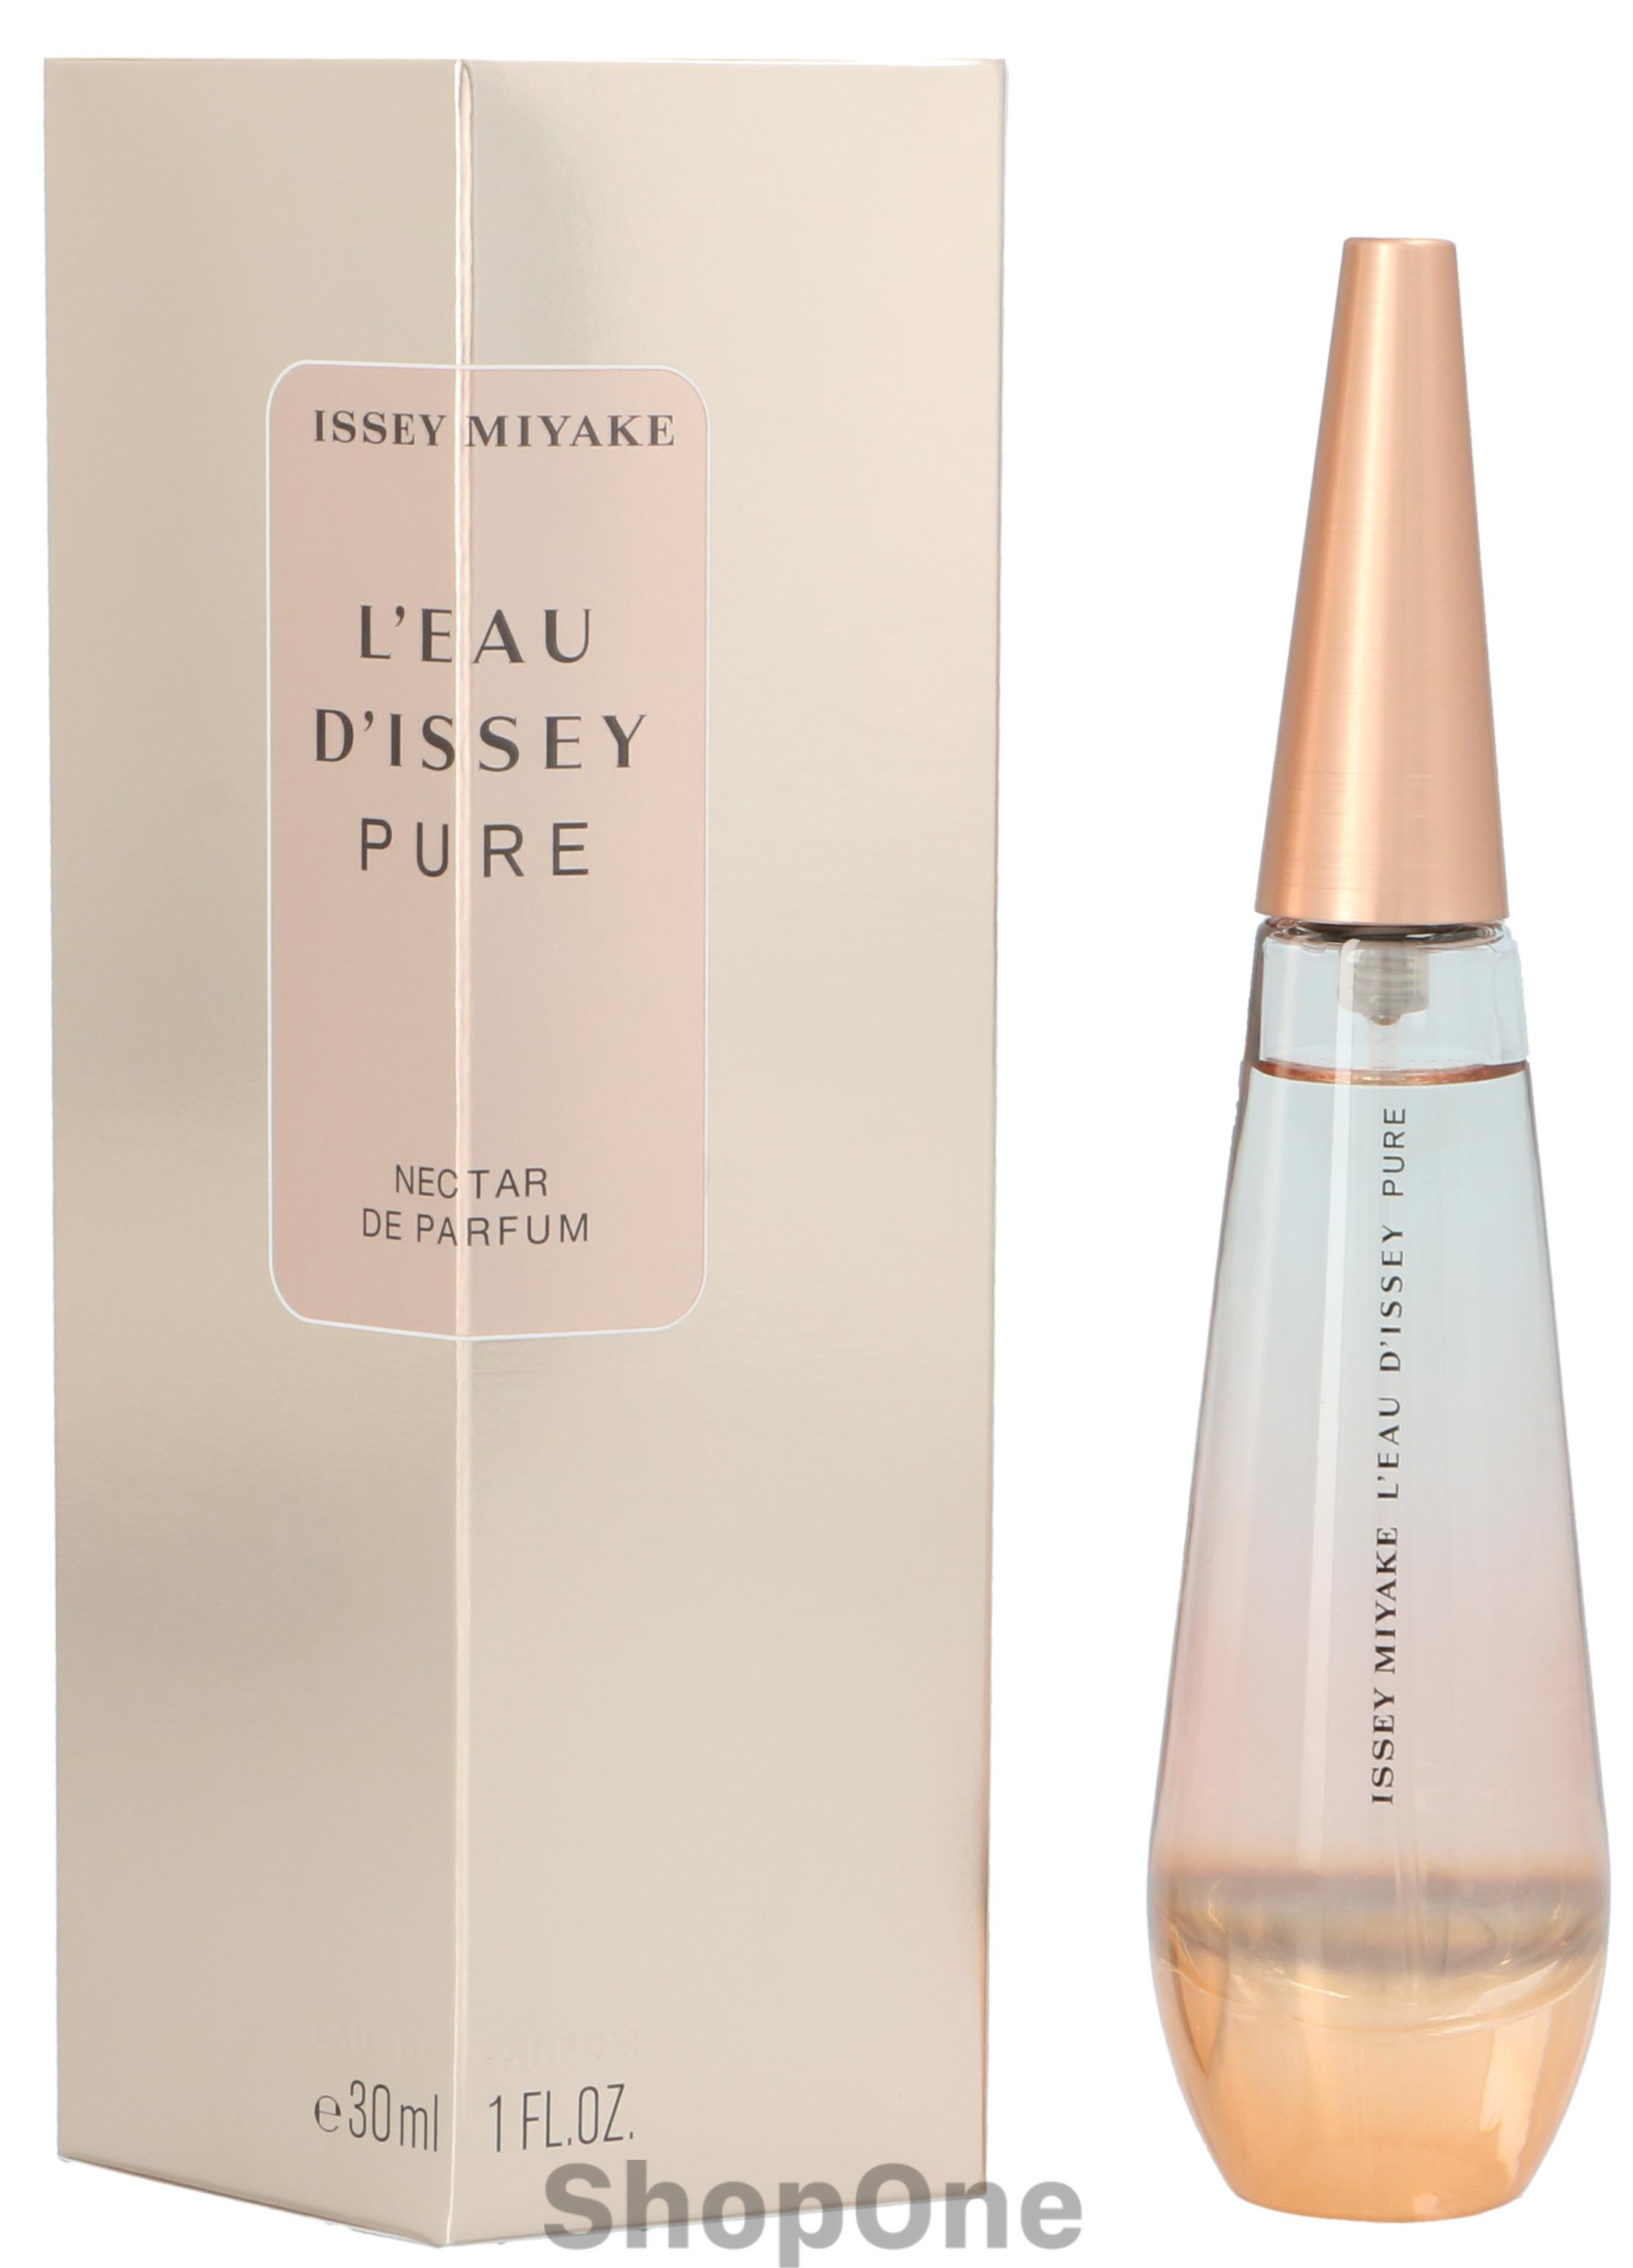 LEau DIssey Pure Nectar Edp Spray 30 ml fra Issey Miyake - Damesgeuren Issey Miyake LEau DIssey Pure Nectar Edp Spray 30 ml. Fra Issey Miyake.